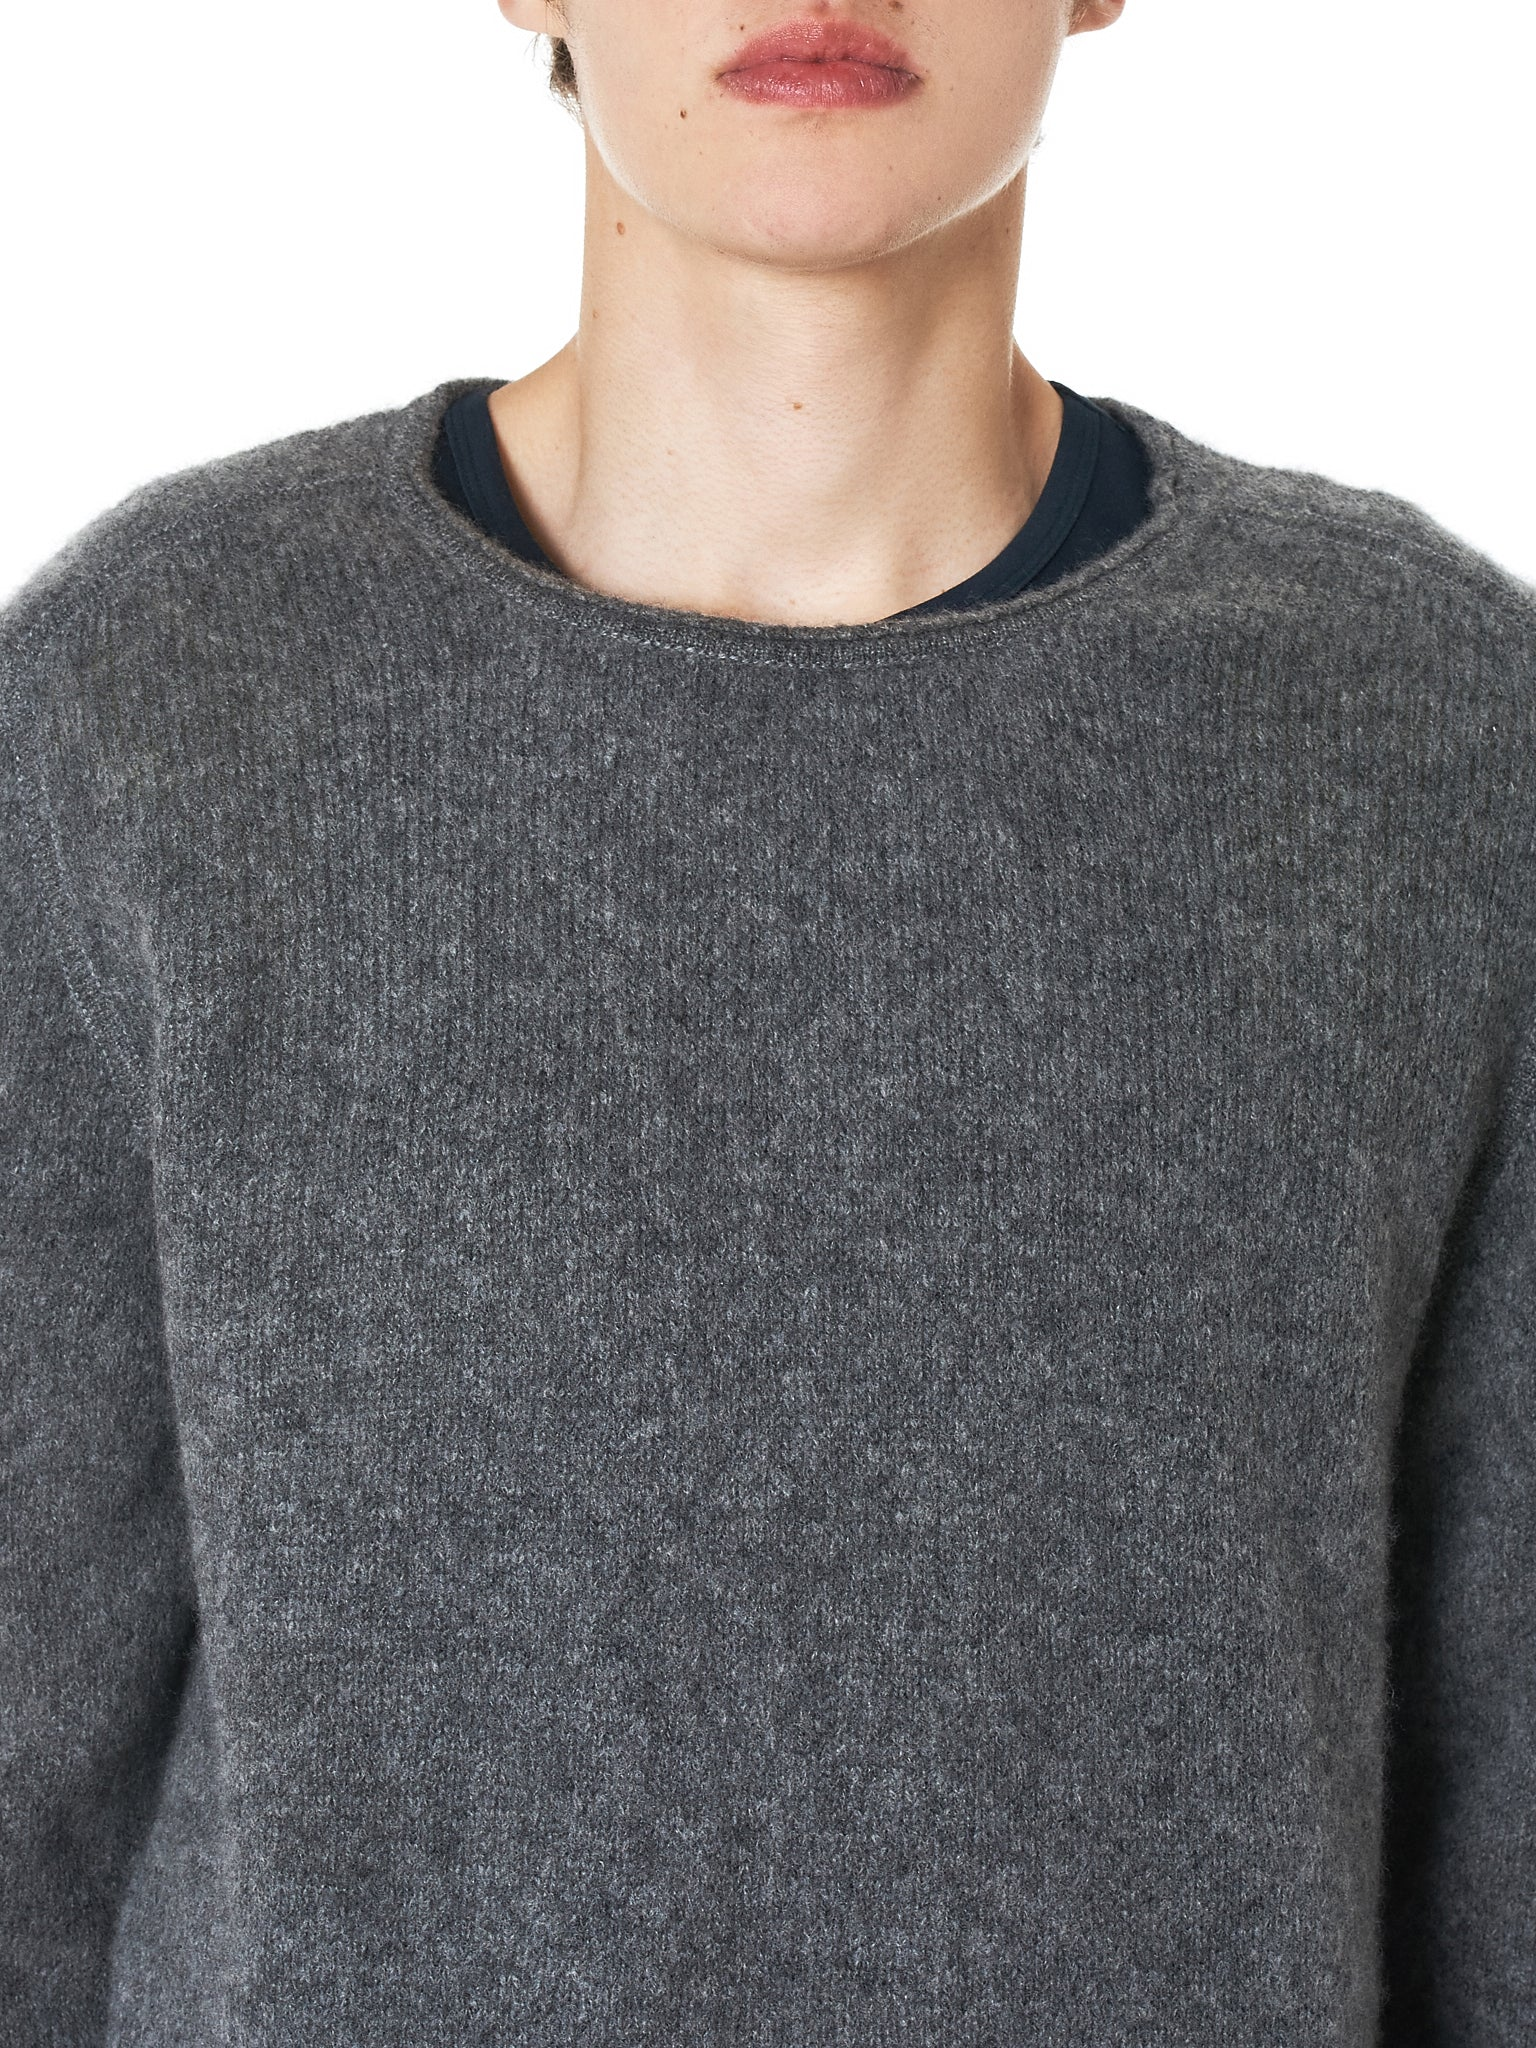 Denis Colomb Sweater - Hlorenzo Front Detail